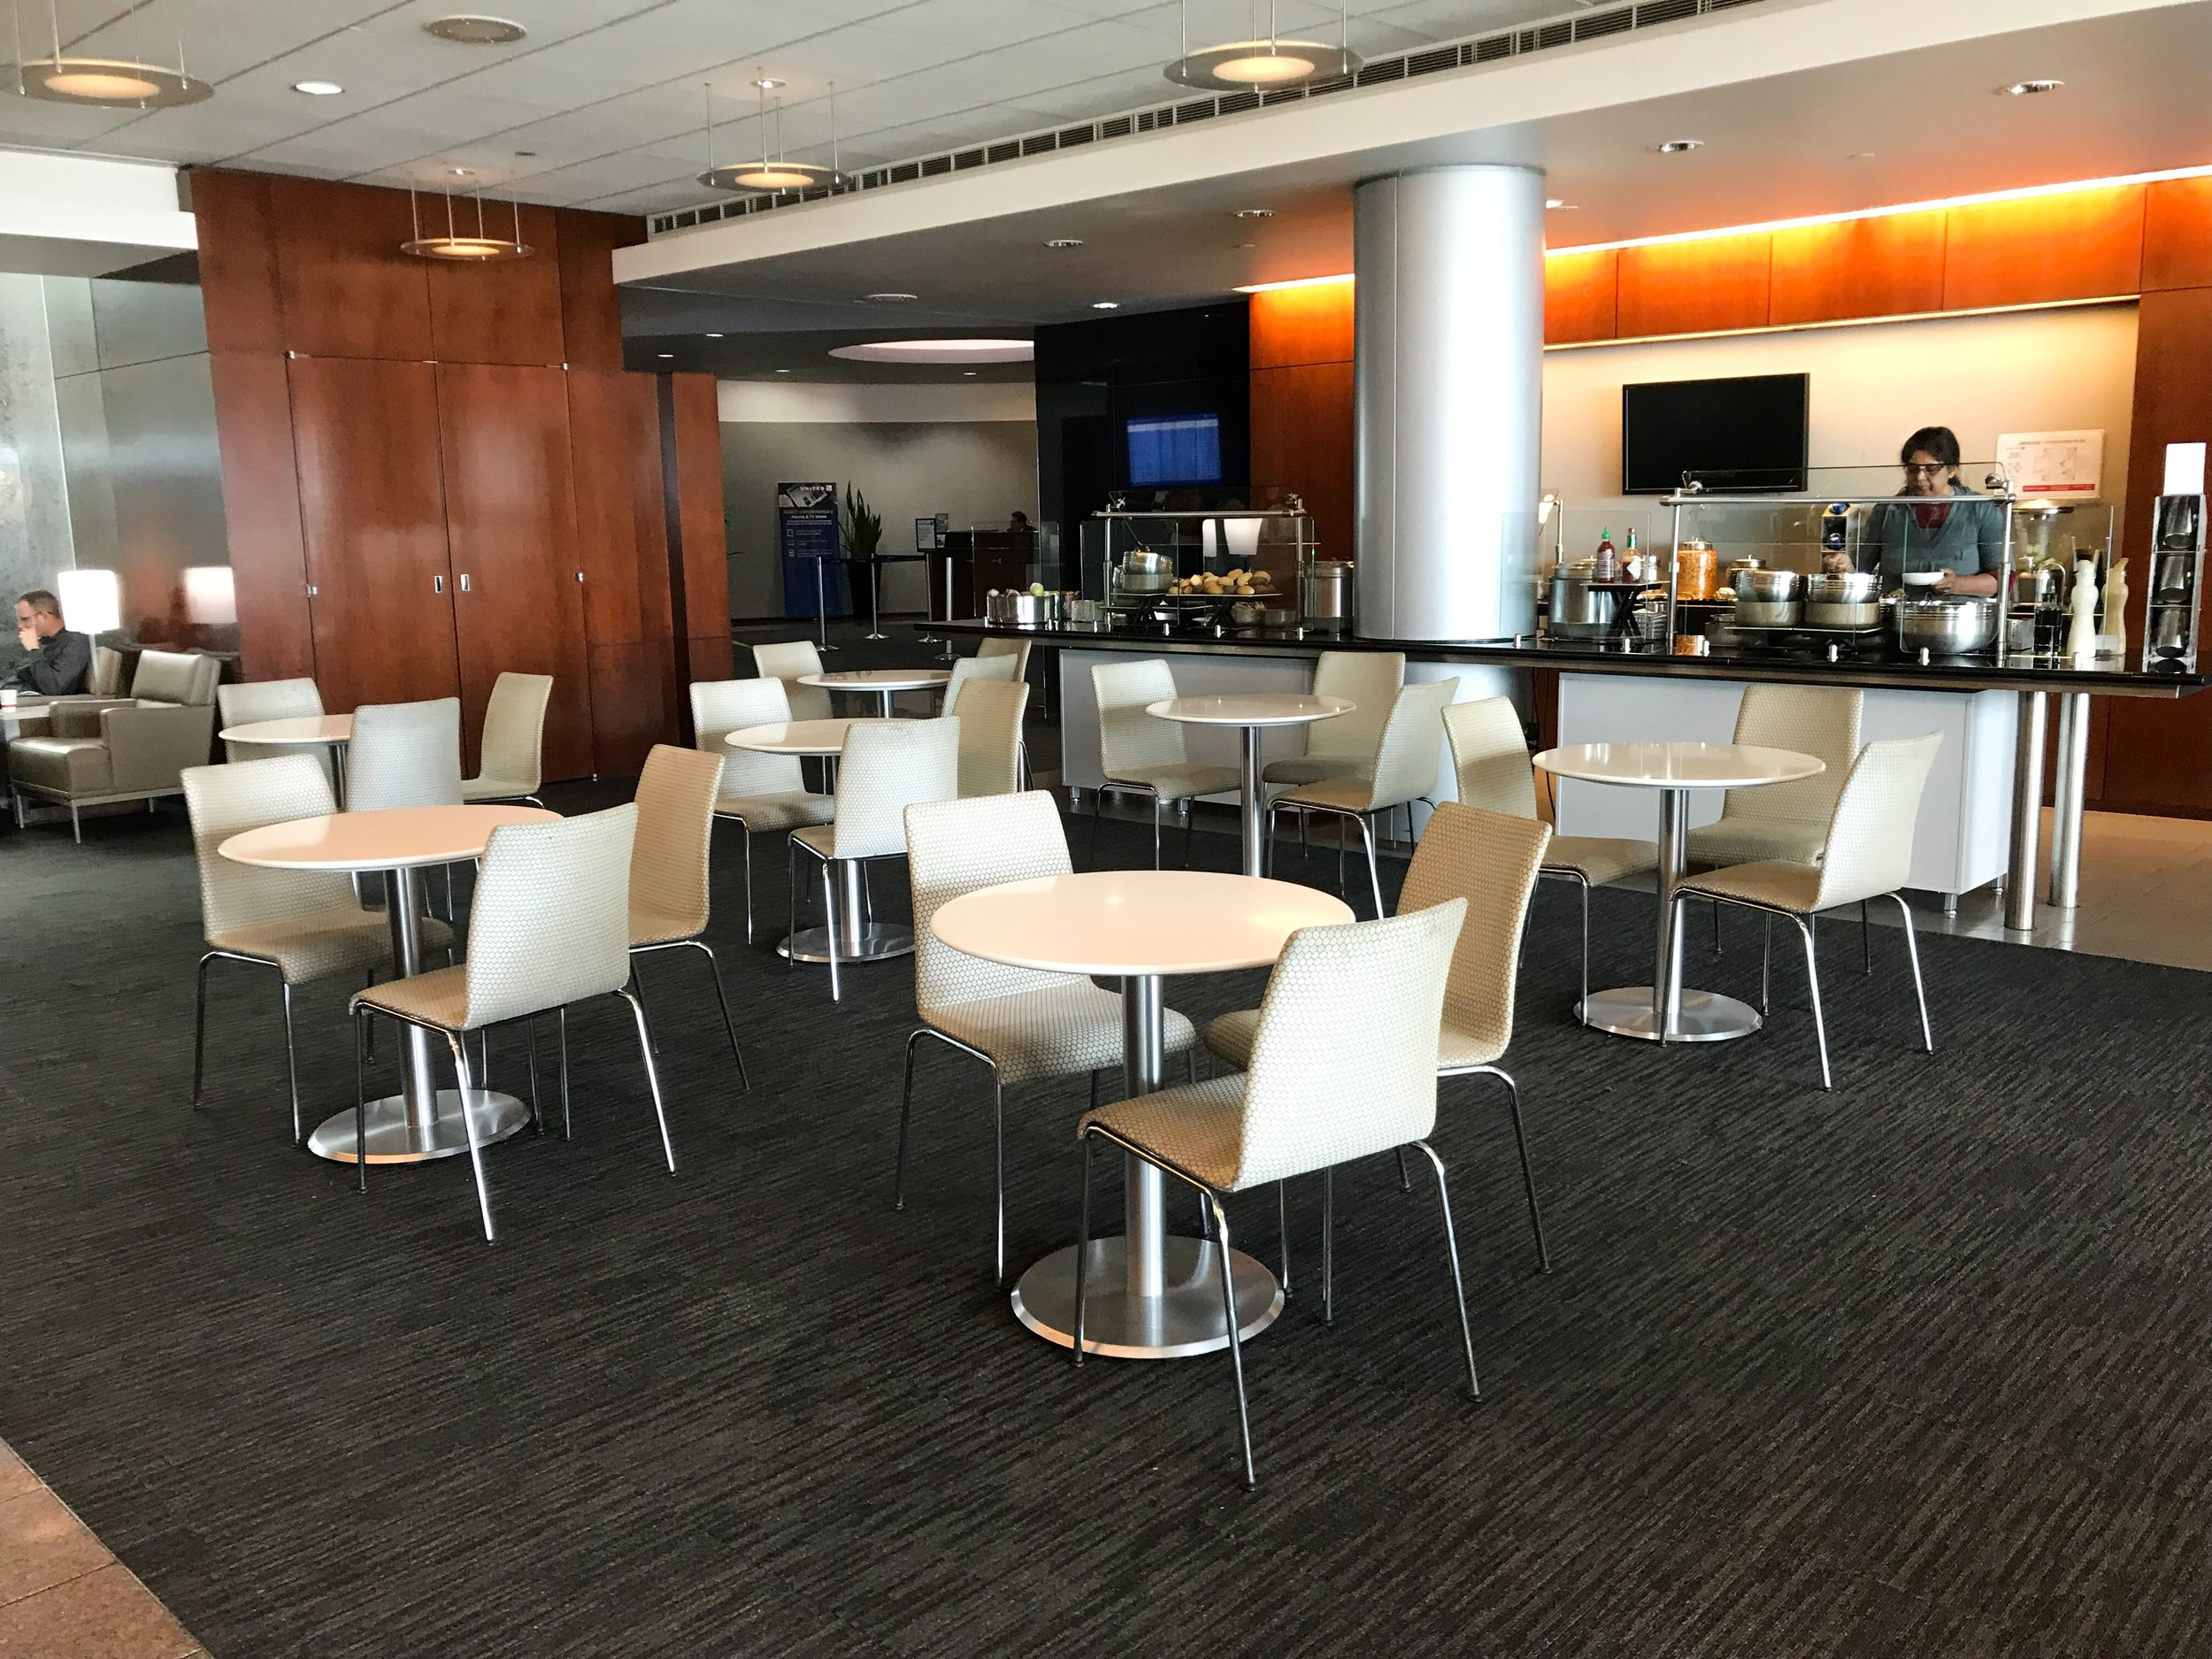 DENVER - 2 United Club Locations